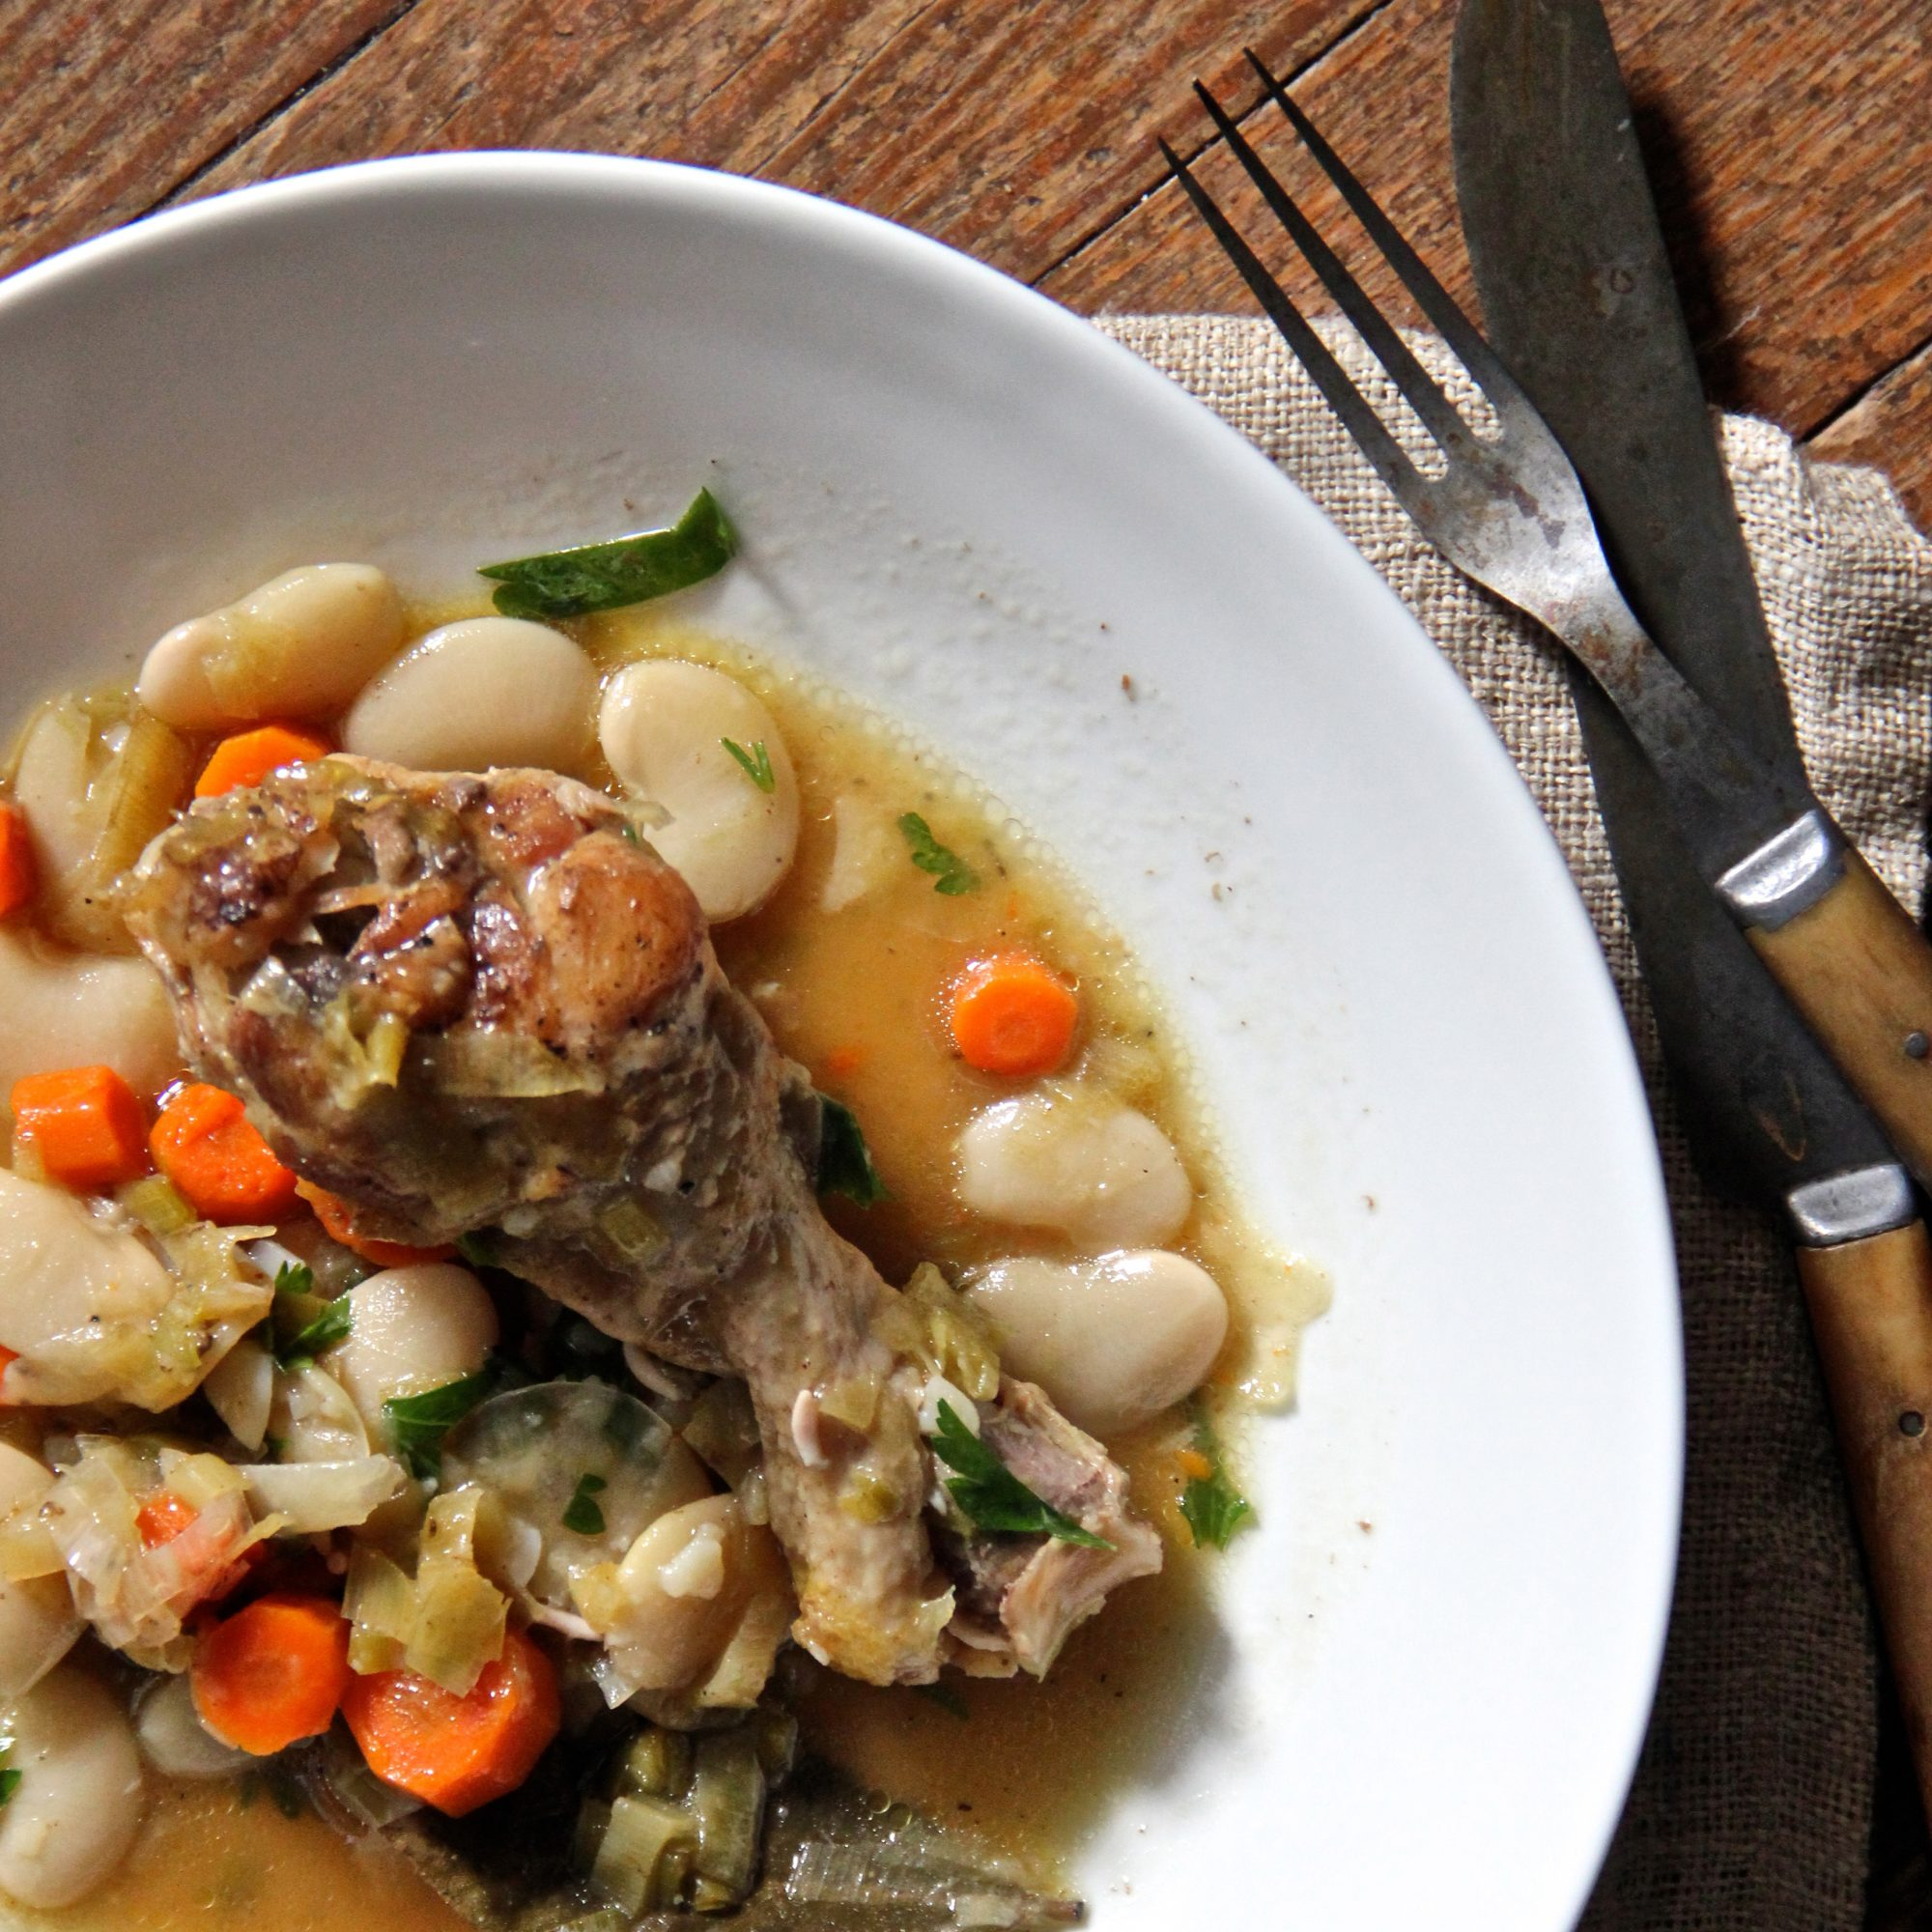 201405-r-chicken-and-white-bean-cassoulet.jpg